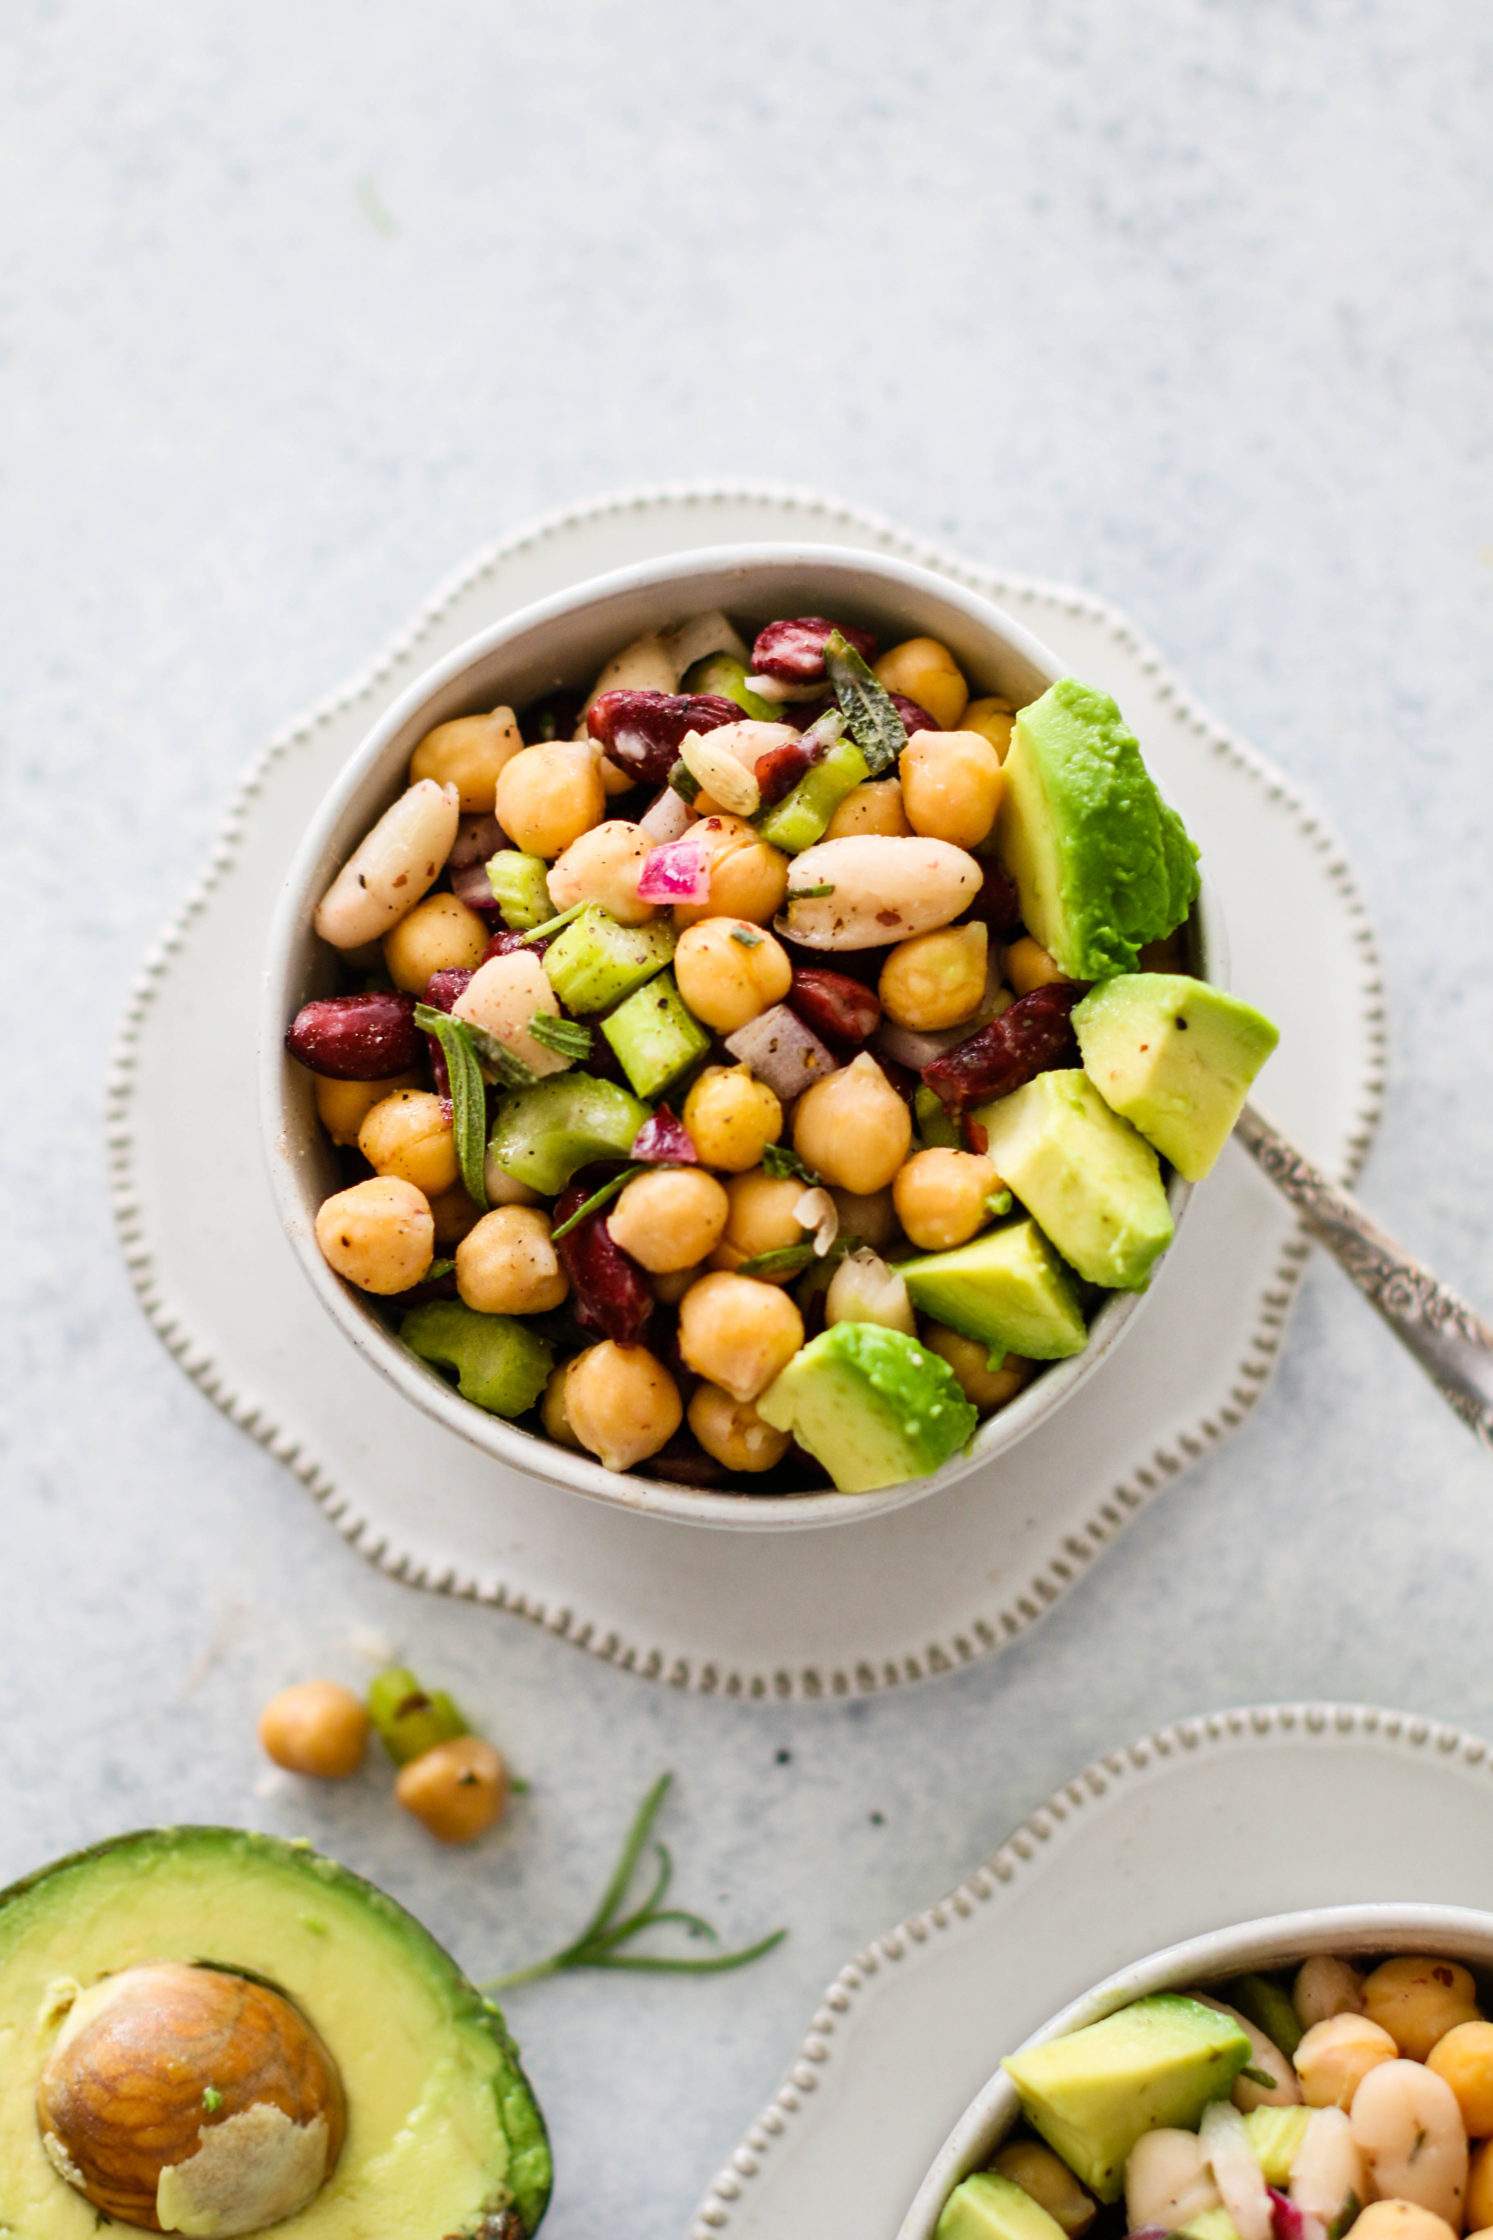 Oil-Free Rosemary Three Bean Salad by Flora & Vino